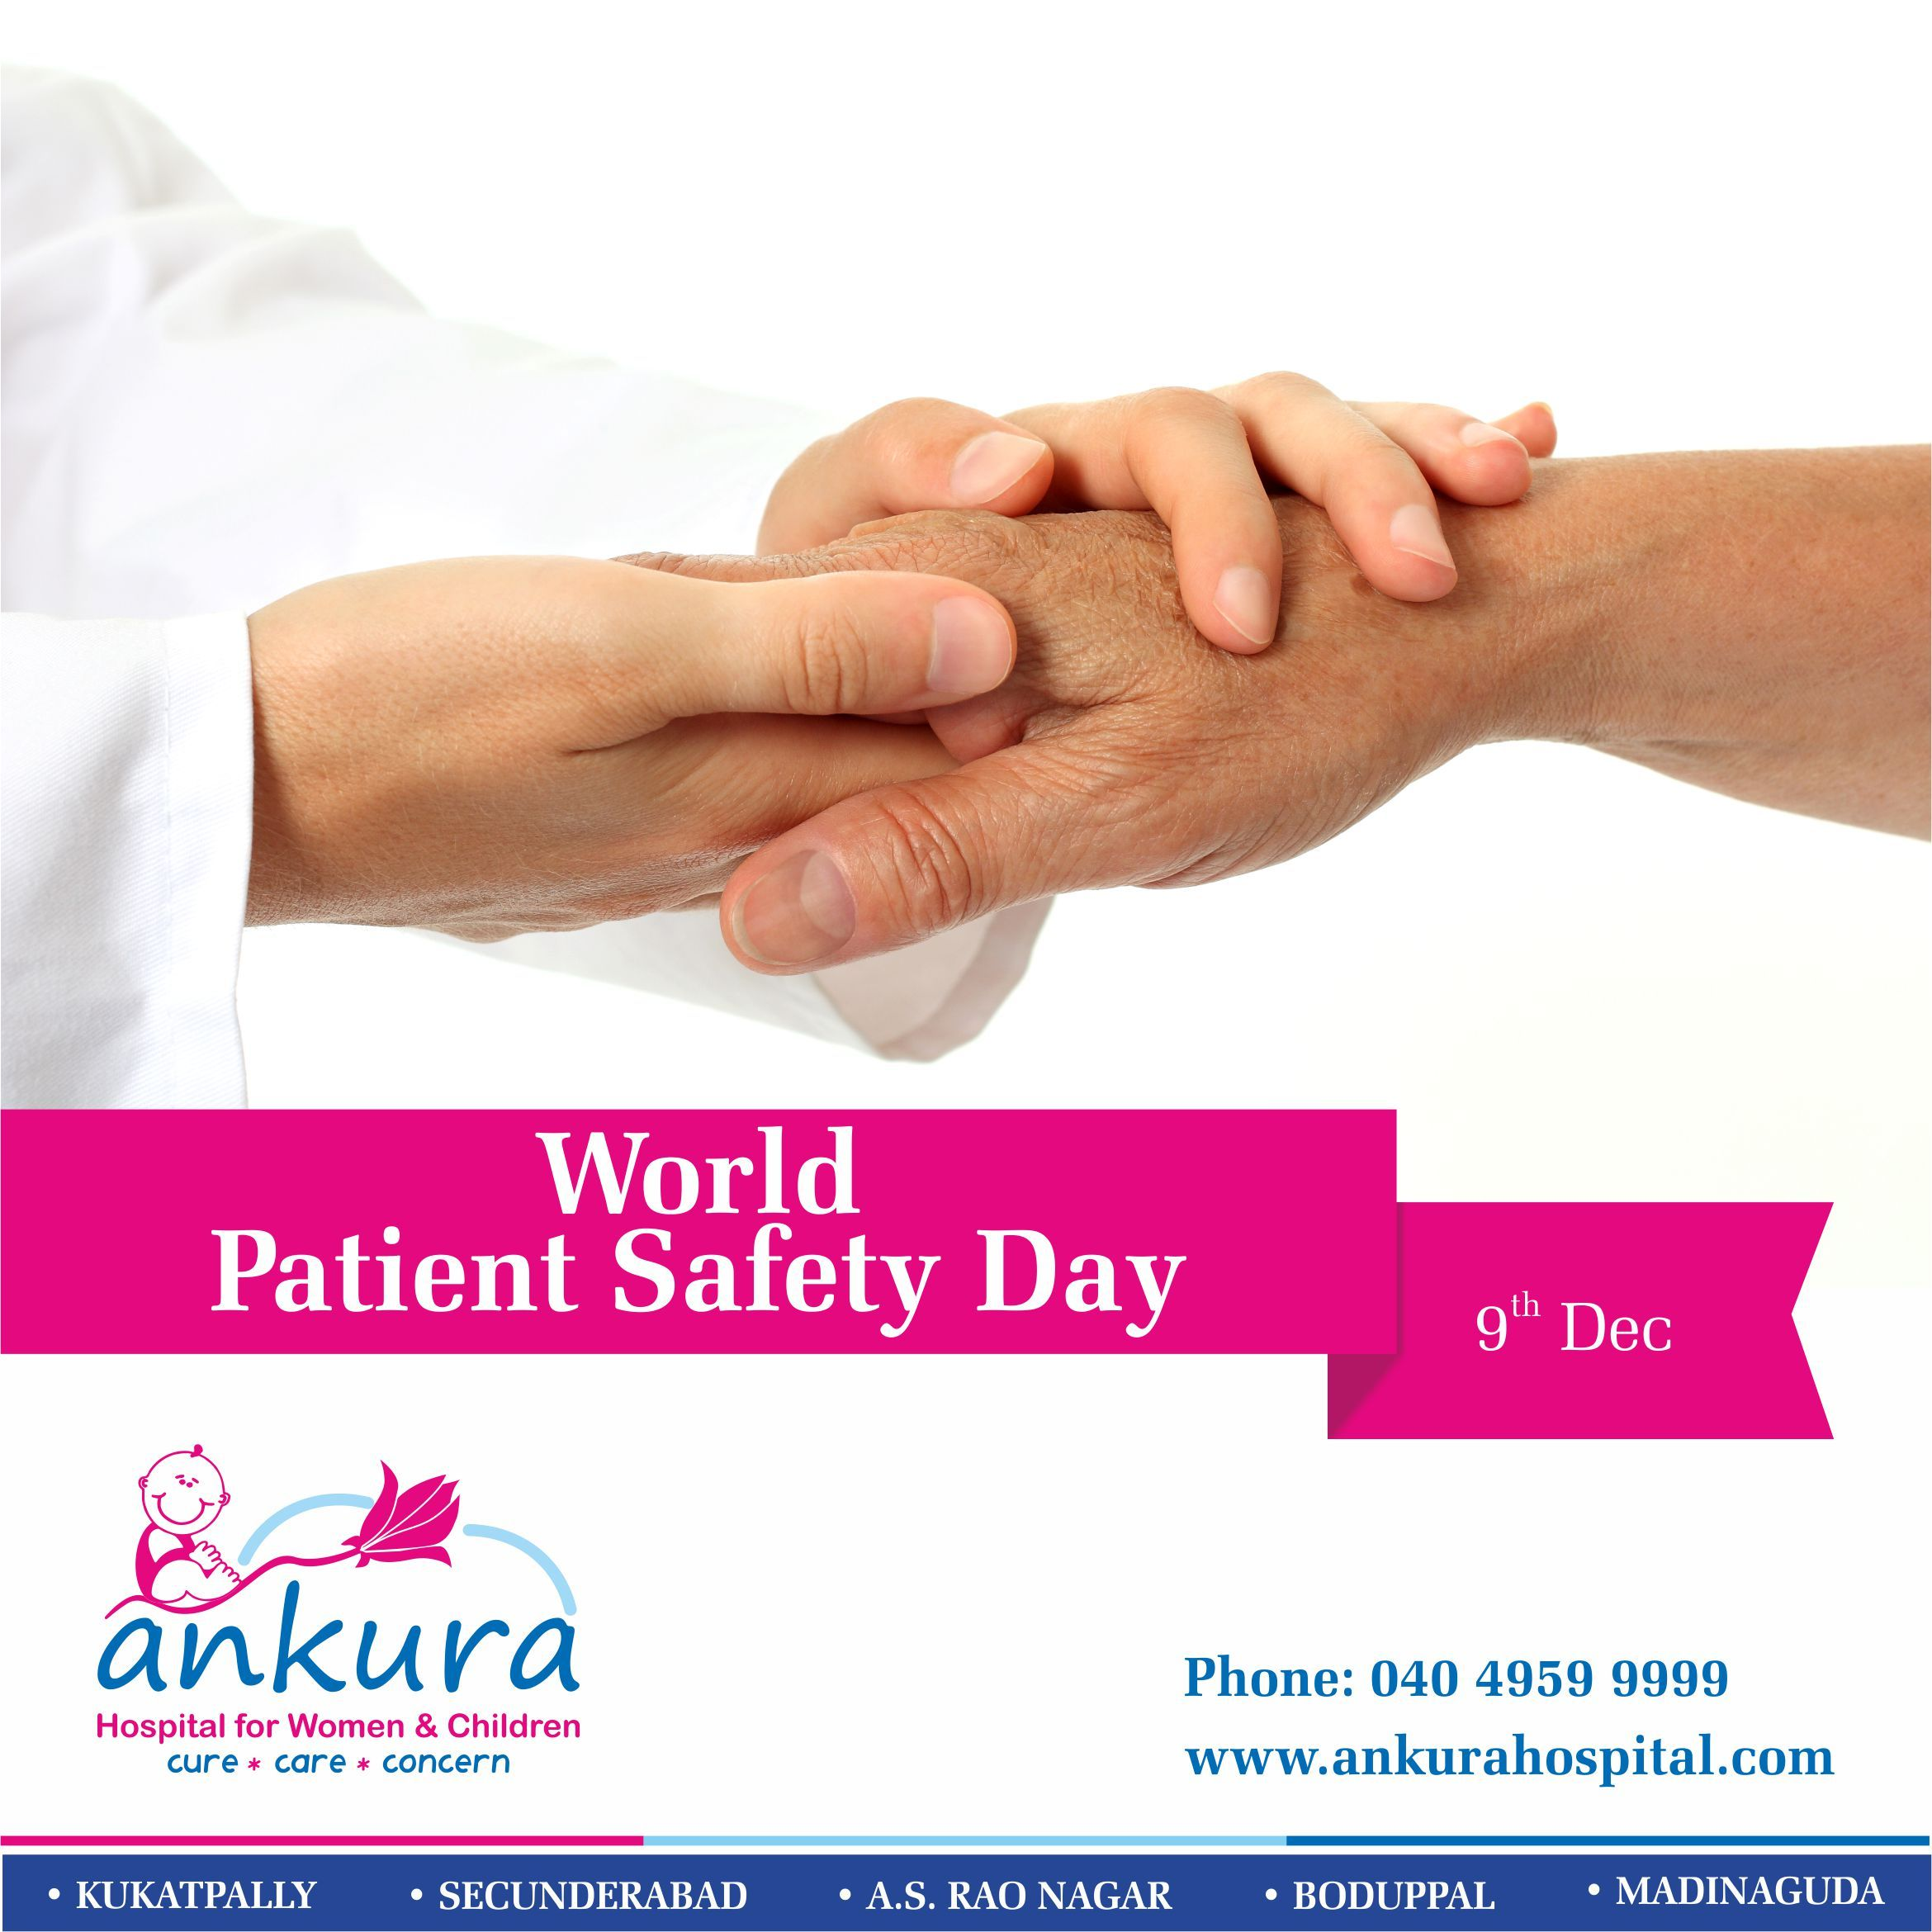 World Patient Safety Day 9th December. World Patient